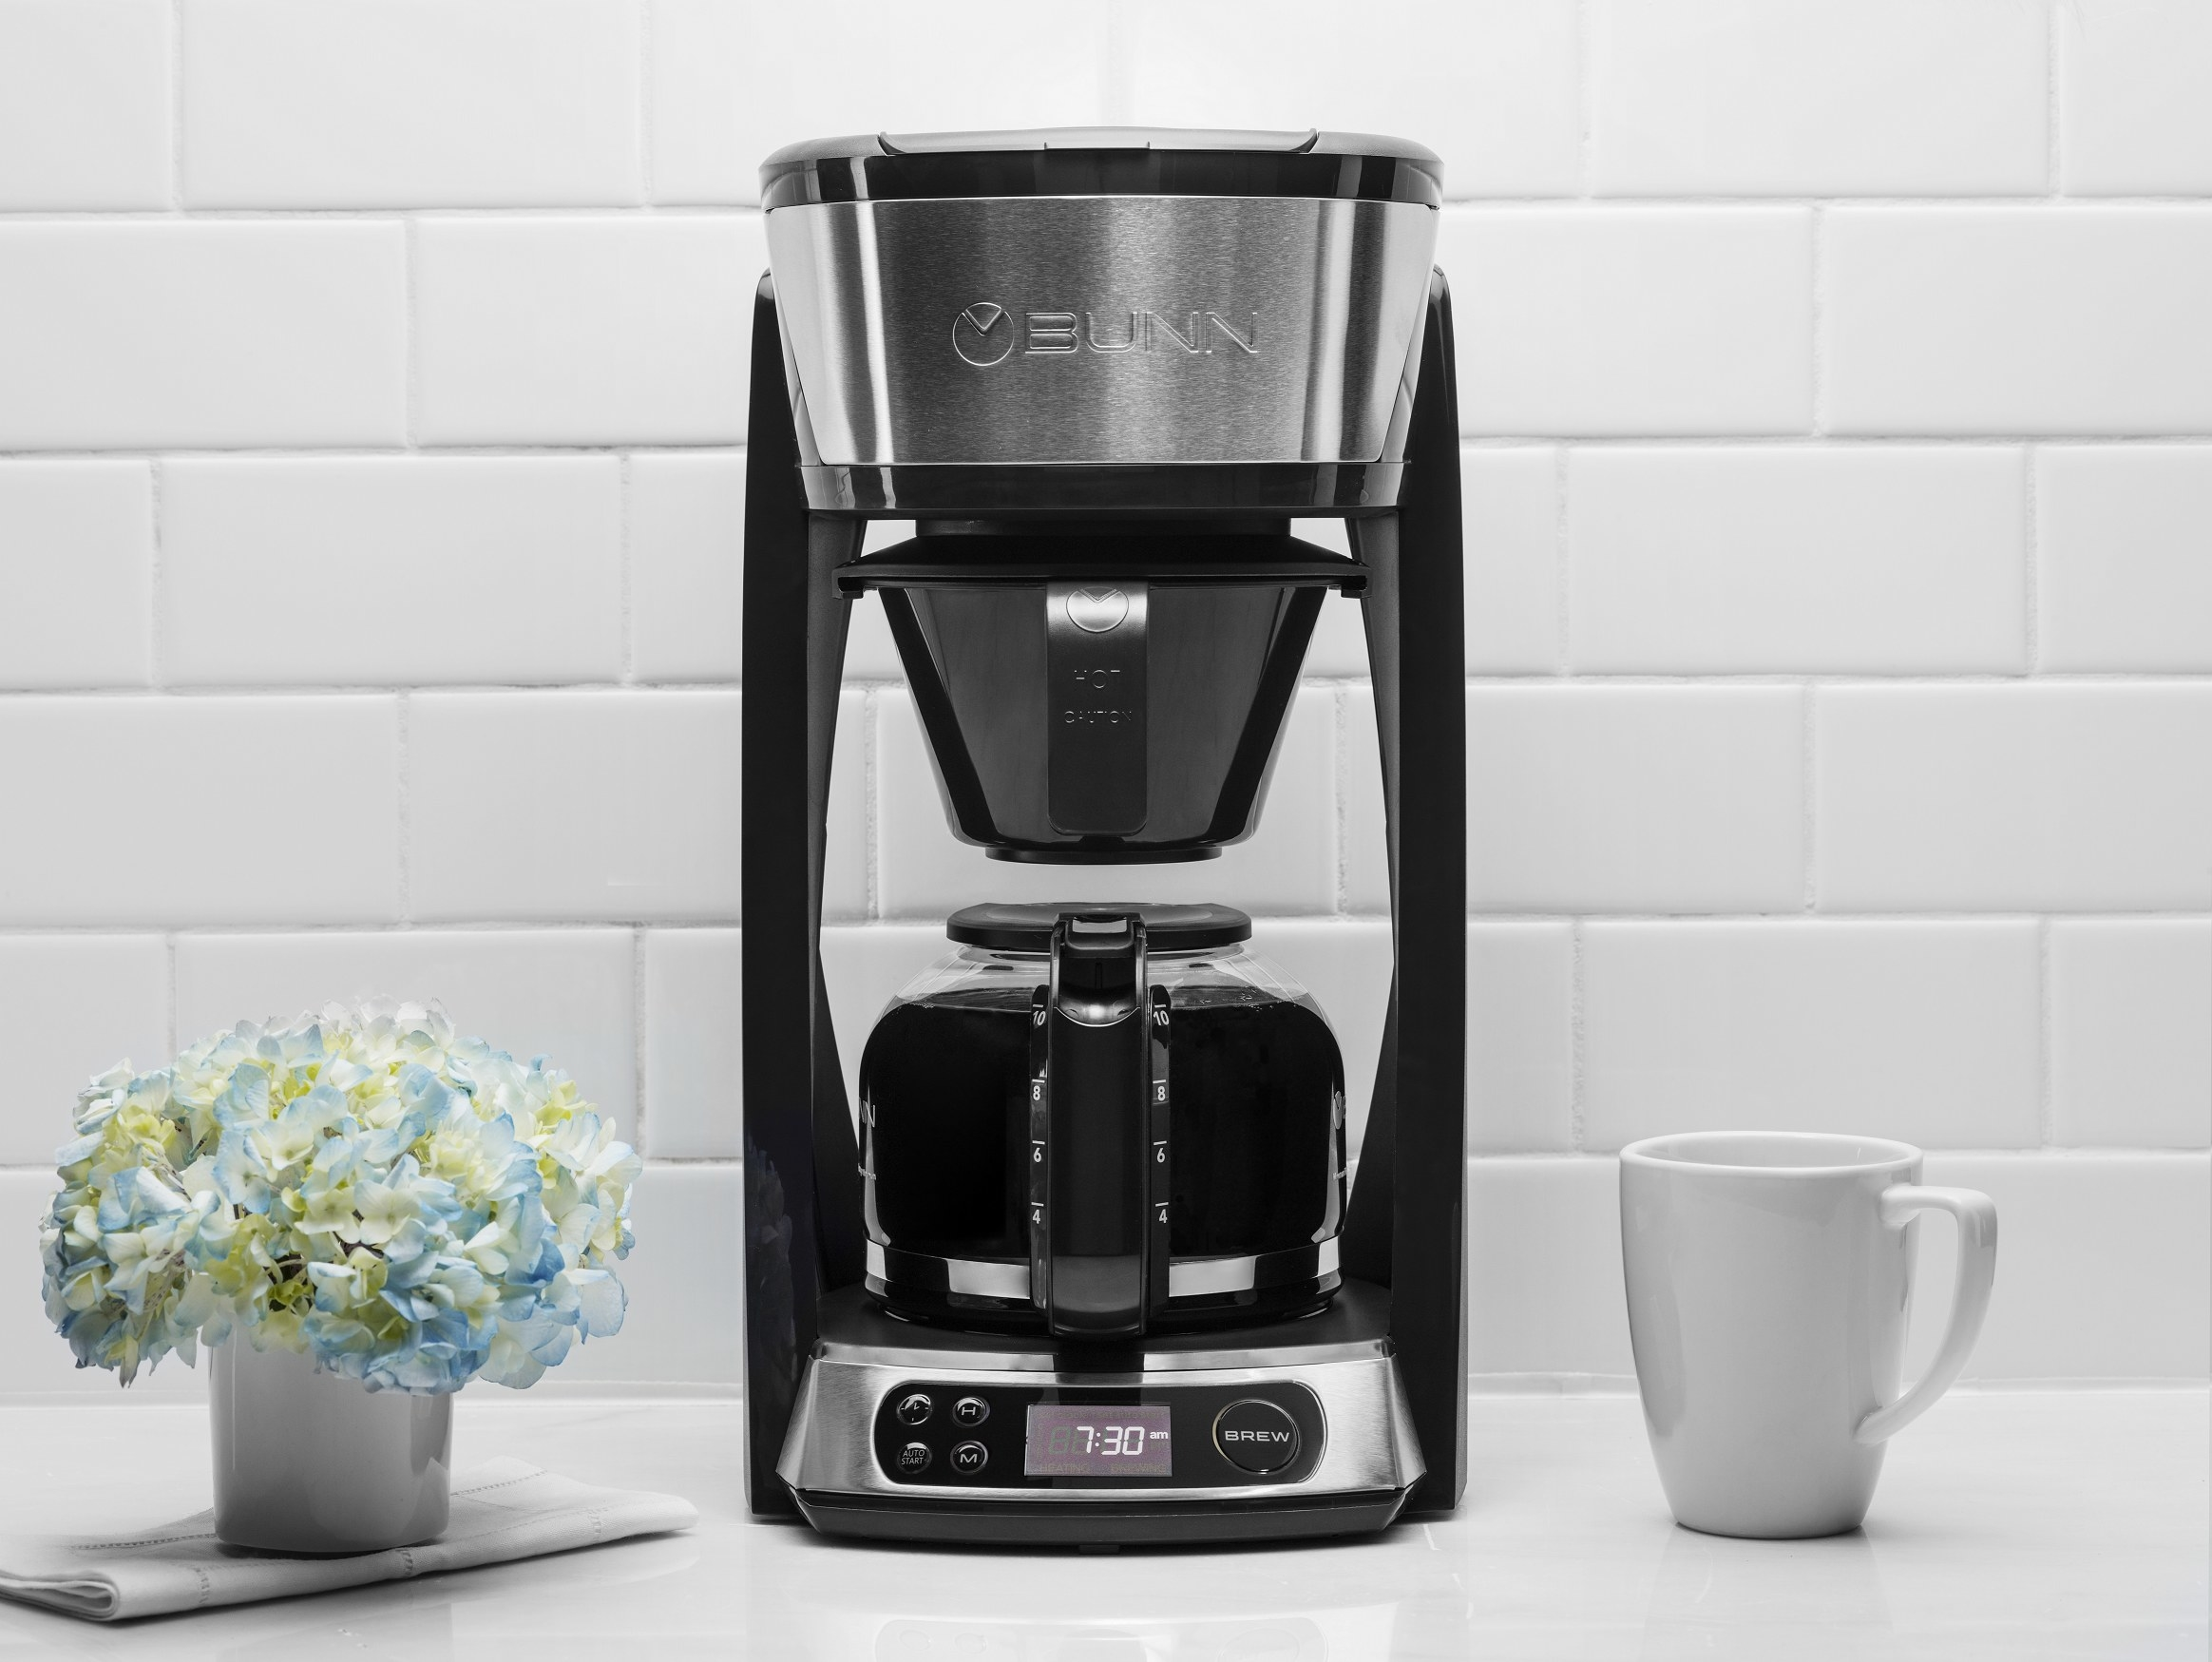 stainless steel and black coffee maker on a kitchen counter